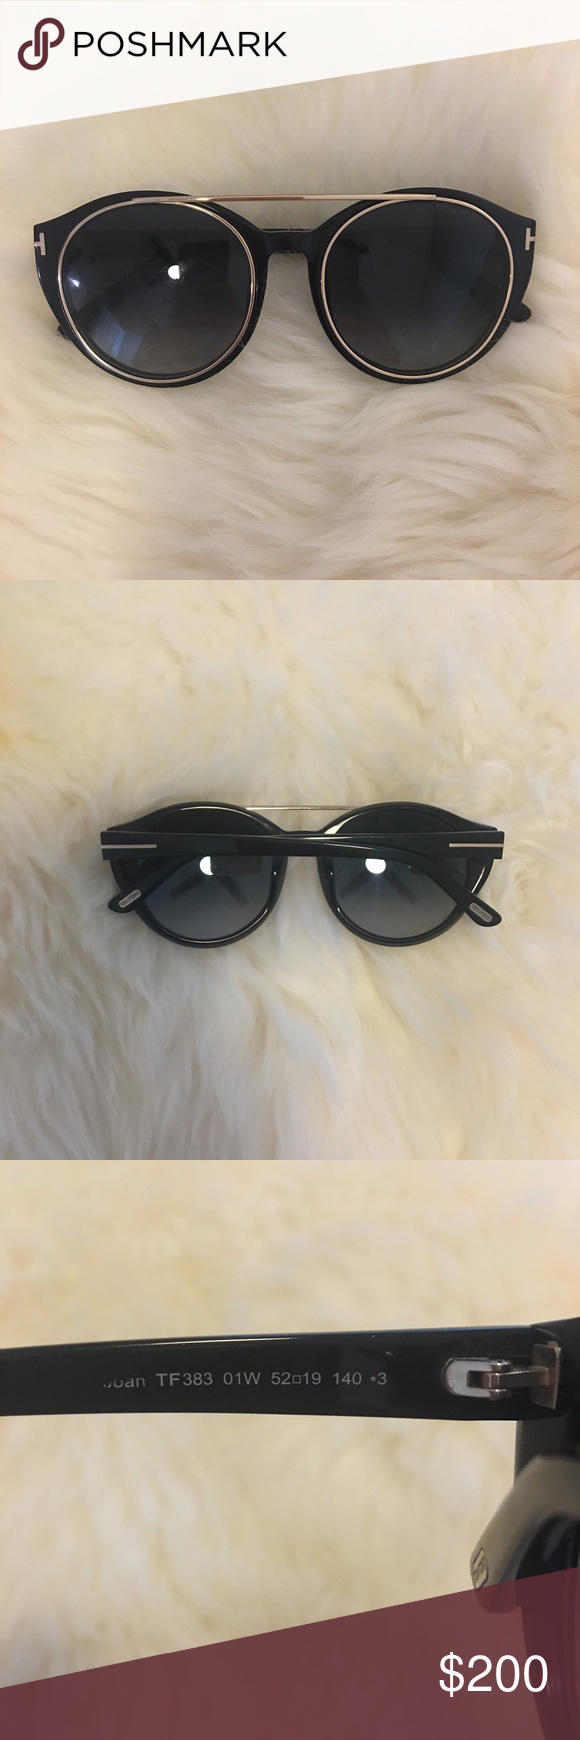 3b2f75e2a3d Tom Ford Joan Sunglasses Authentic. In great condition. Very minimal wear  on lenses